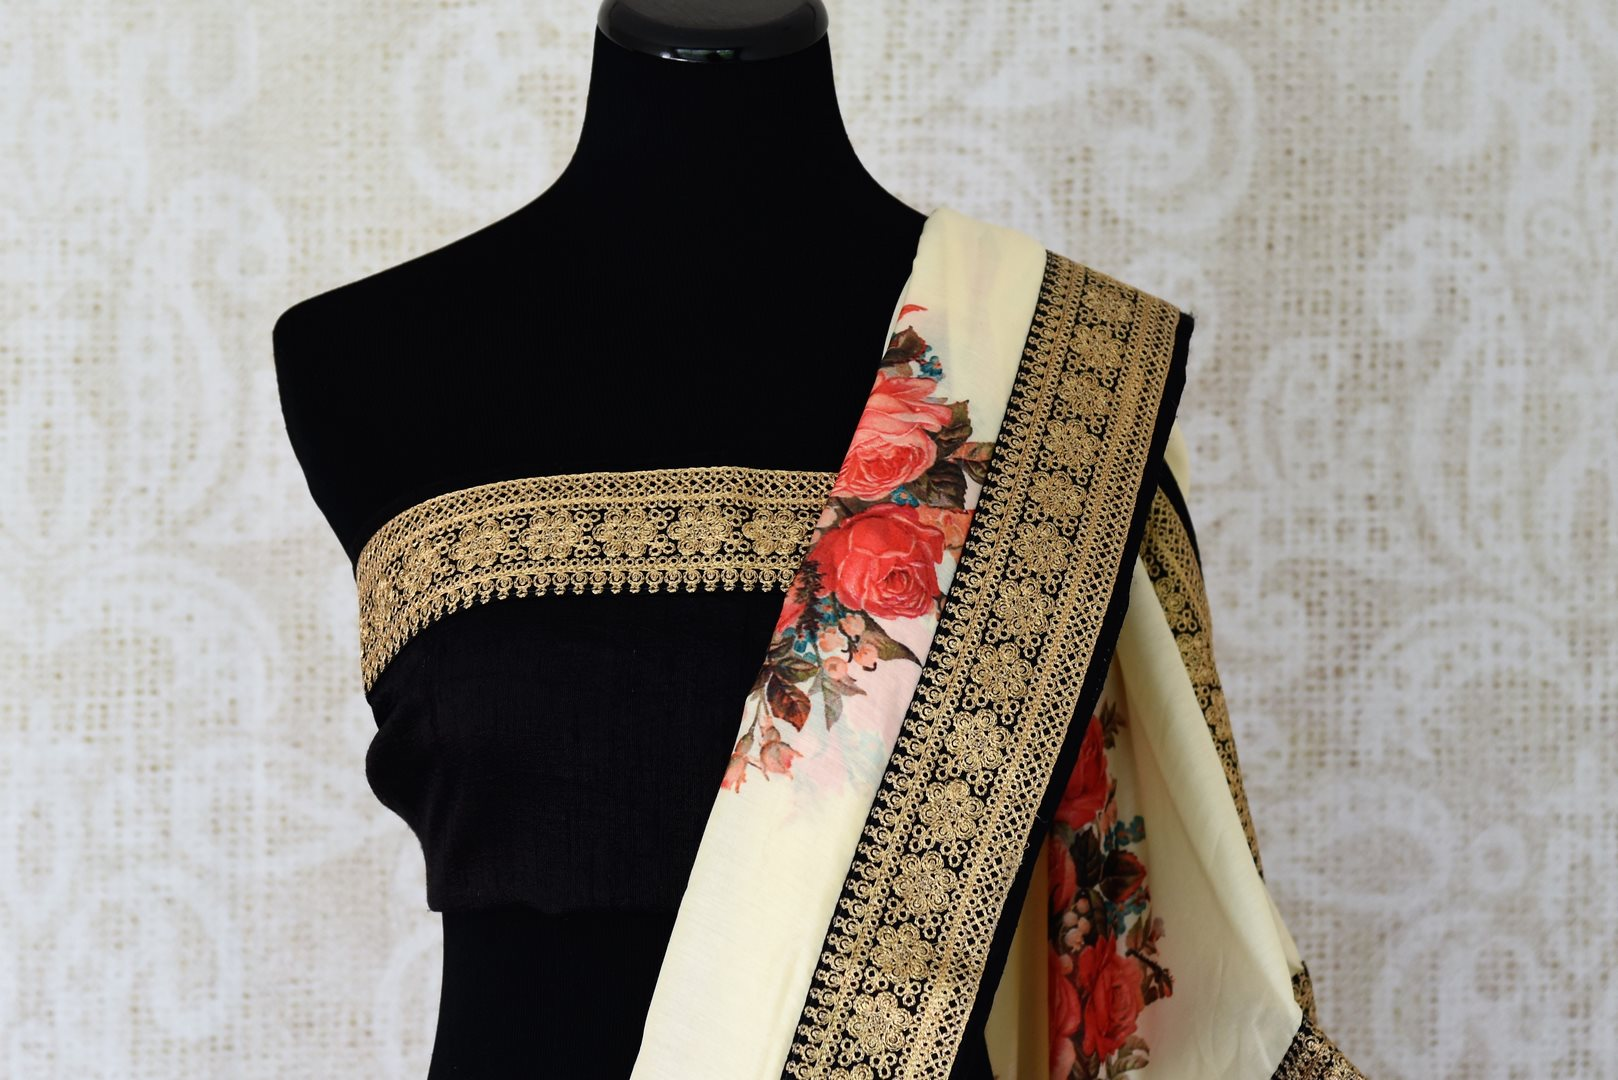 Buy off-white printed muga tussar sari online in USA with black embroidered border. Take your Indian style a notch up with a range of beautiful Indian clothing from Pure Elegance fashion store. We have a range of traditional Indian sarees, designer sarees, handloom sarees in USA online and in our store. Shop now.-blouse pallu